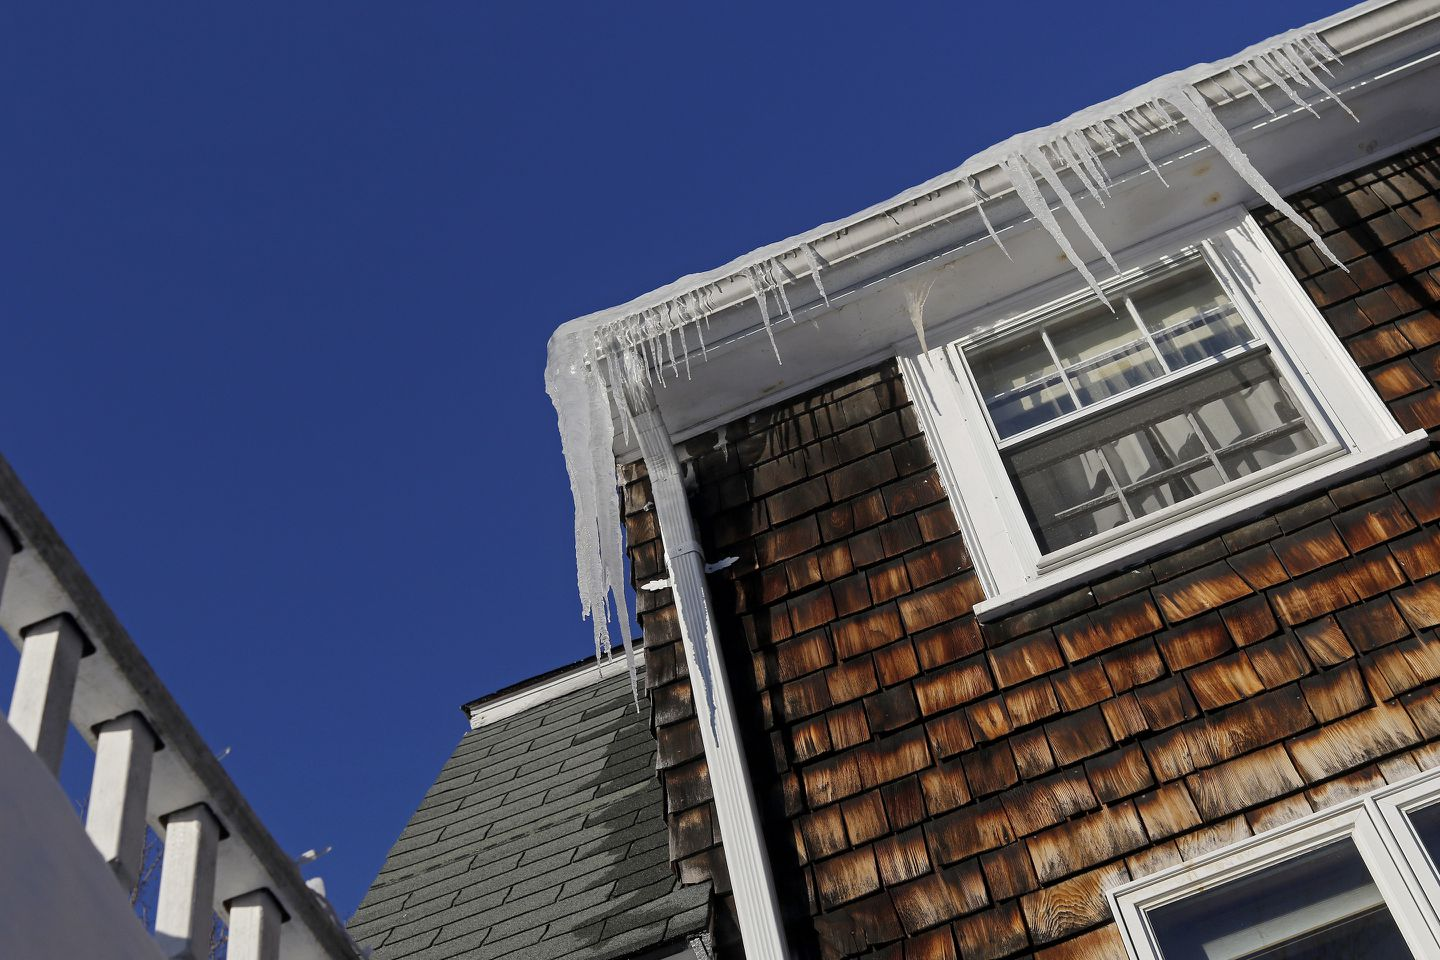 Ice Dams And The Truth About Gutters Metal Roofs The Boston Globe